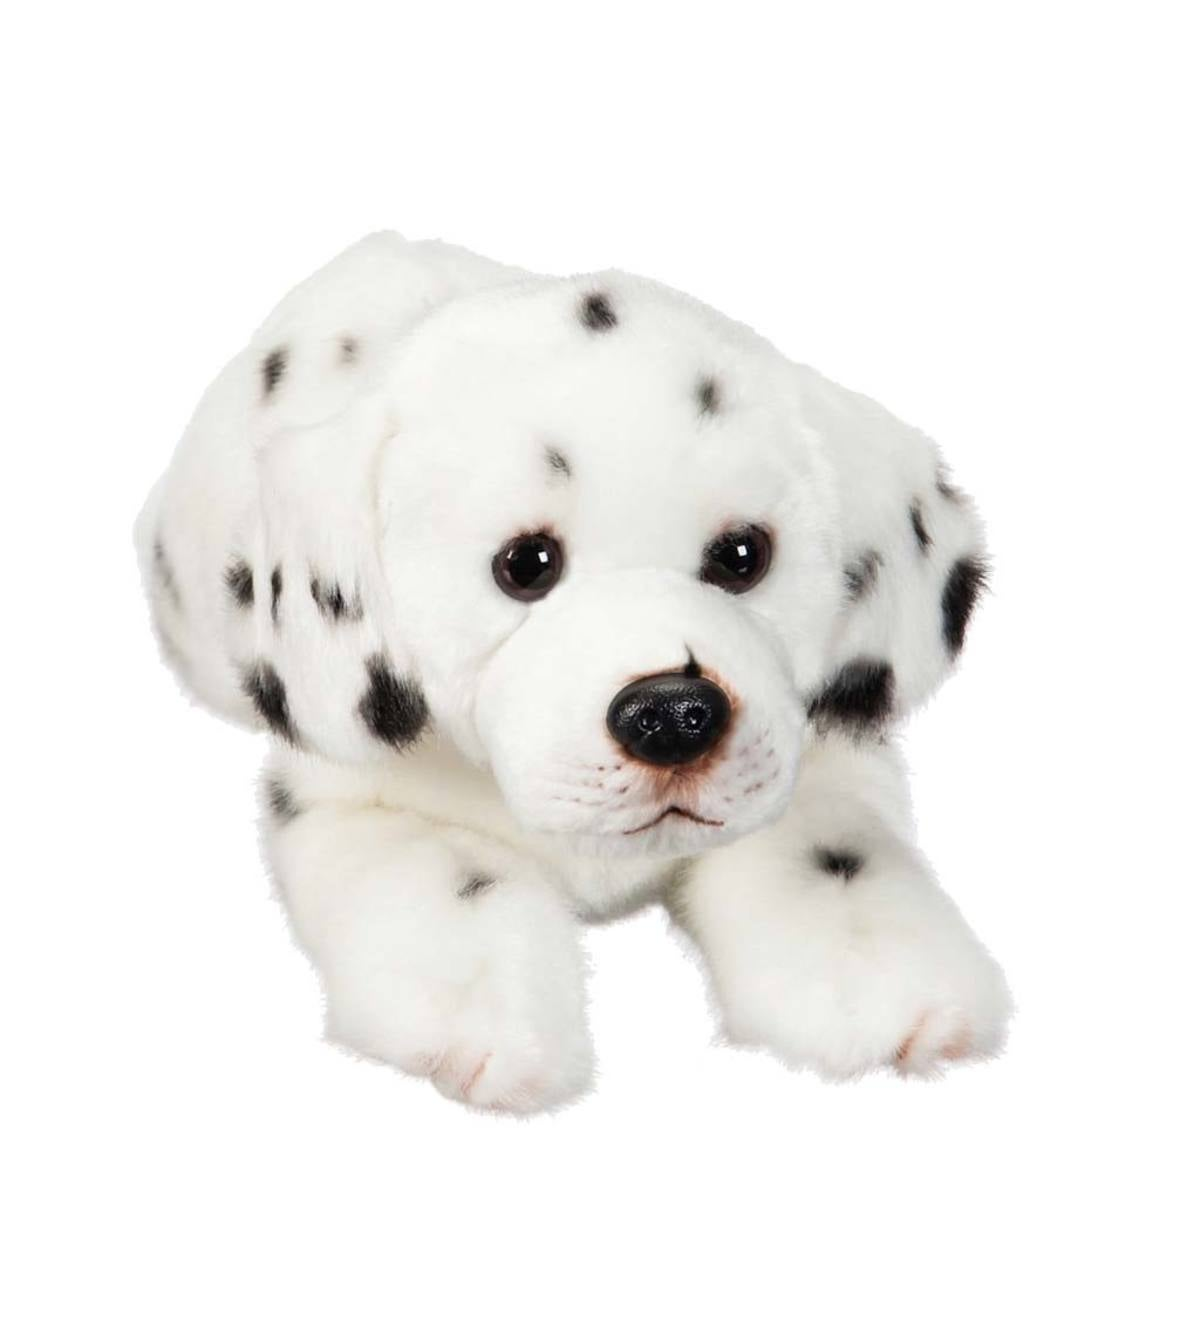 Dalmatian Plush Stuffed Animal